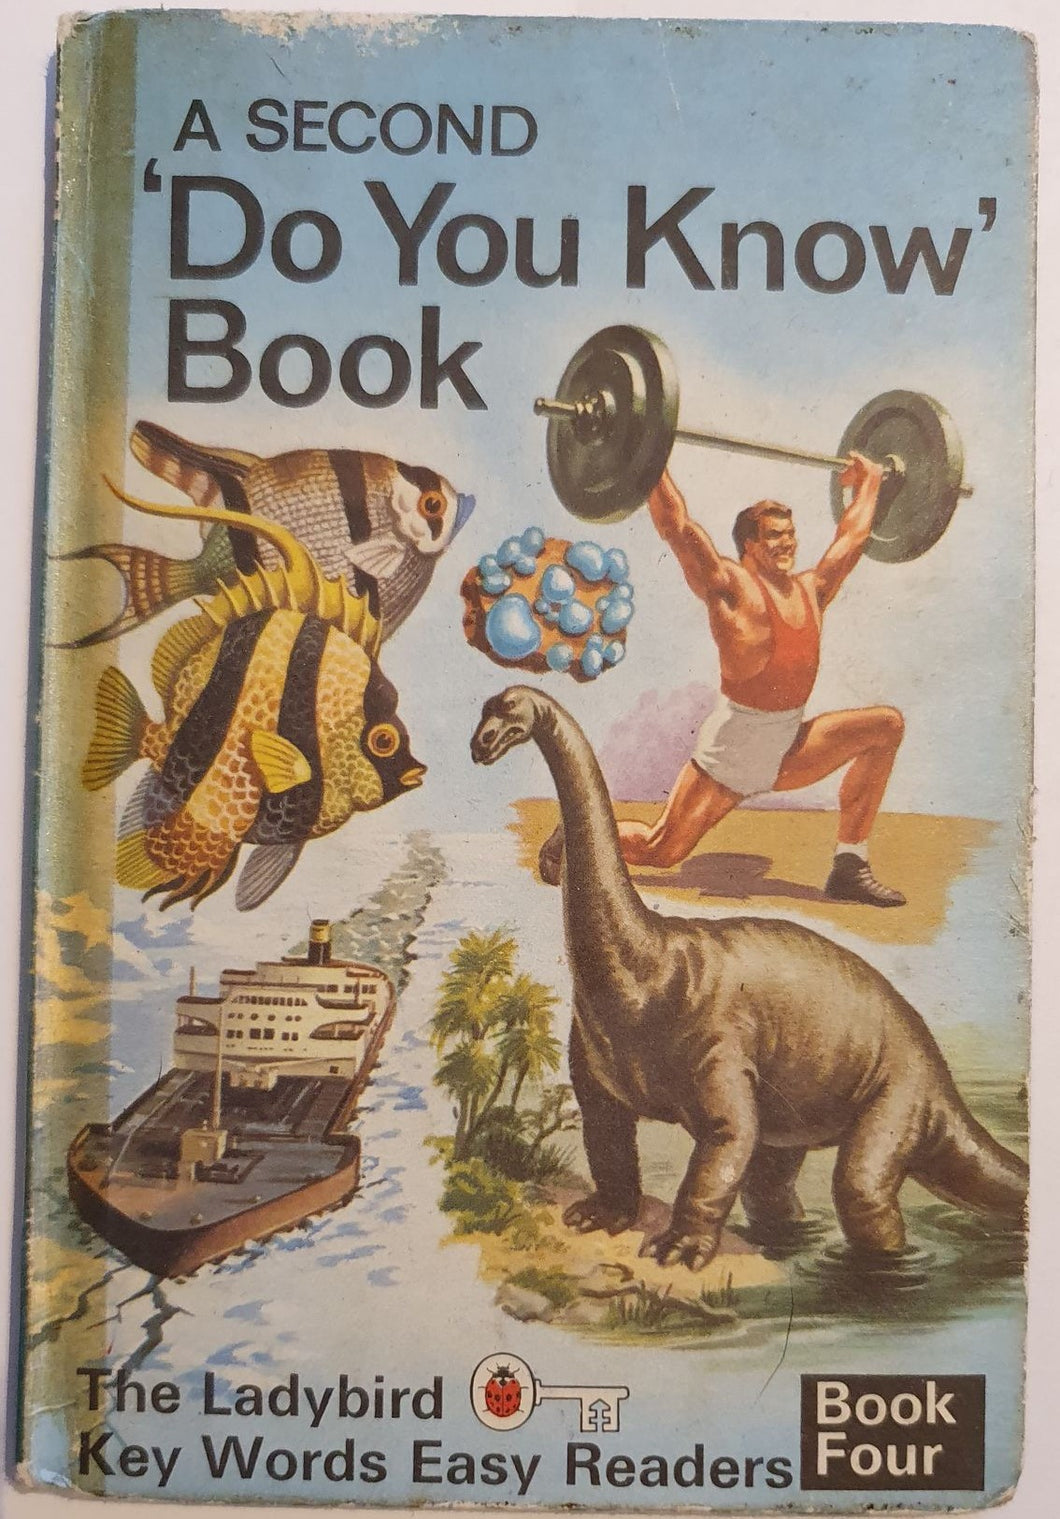 A Second Do You Know Book (11 January 1978 - 24 June 1979)